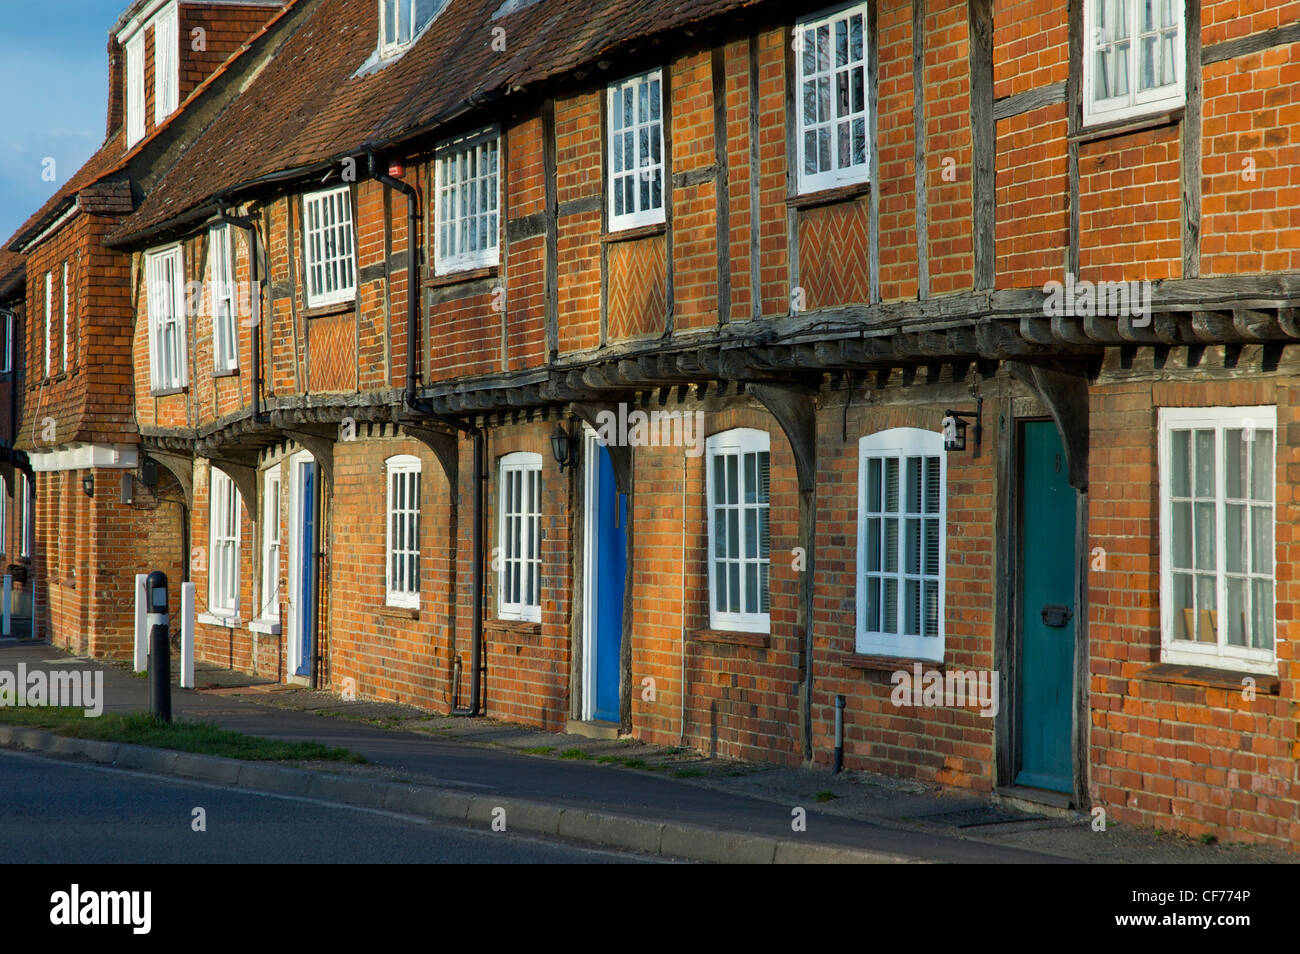 Terrace of brick-built houses in the village of North Warnborough, Hampshire, England UK Stock Photo